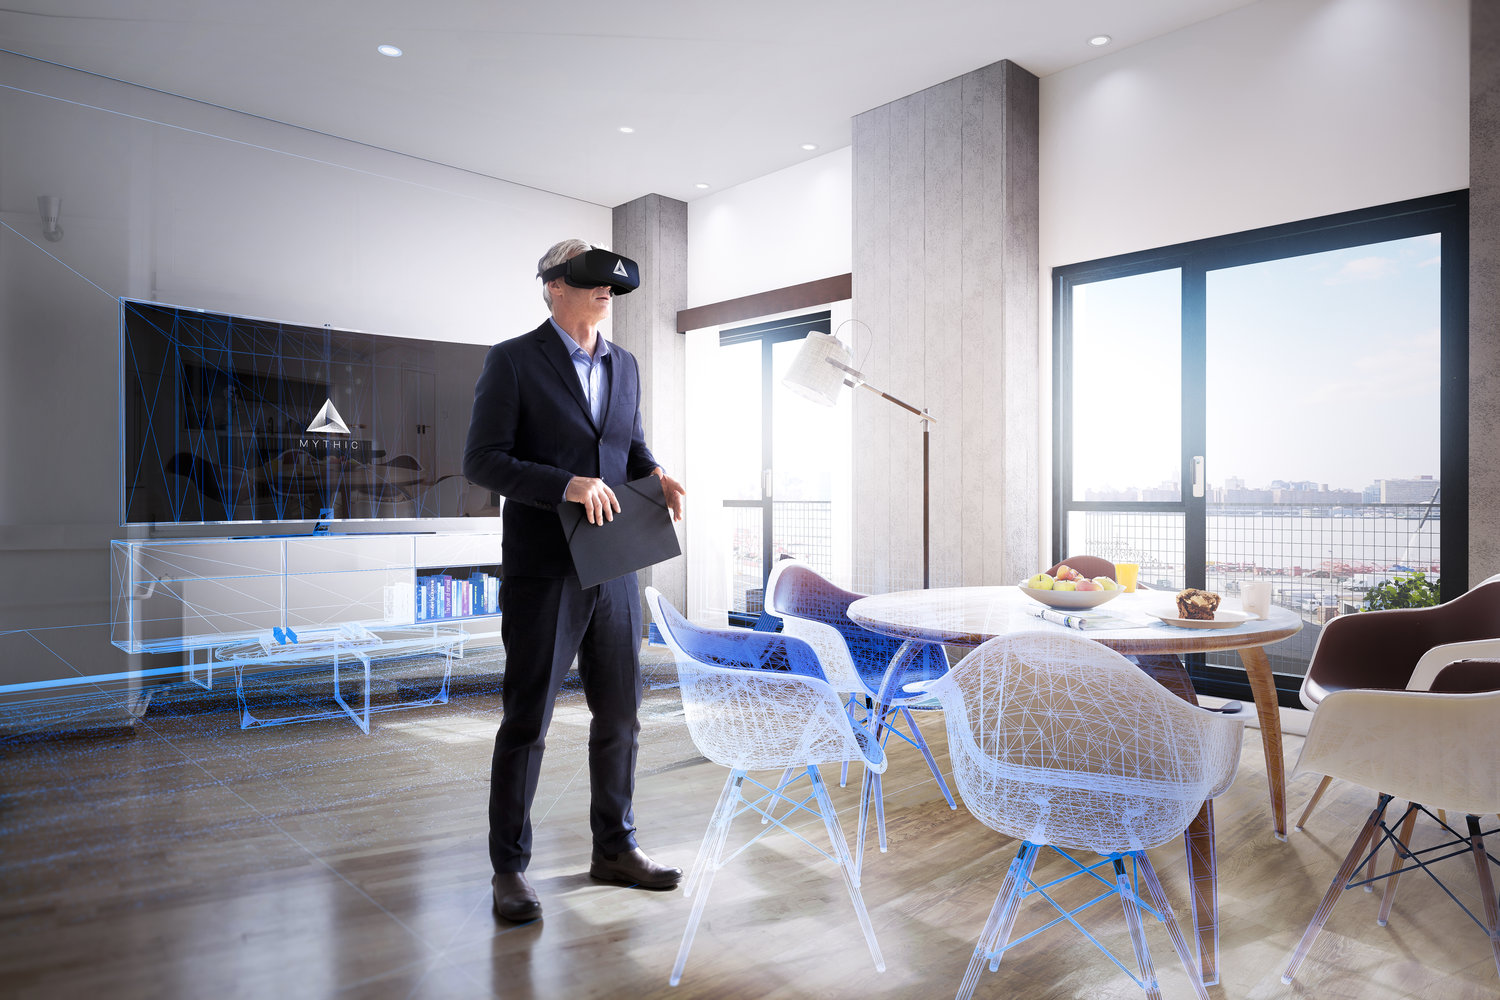 mythic vr vr for real estate architecture design